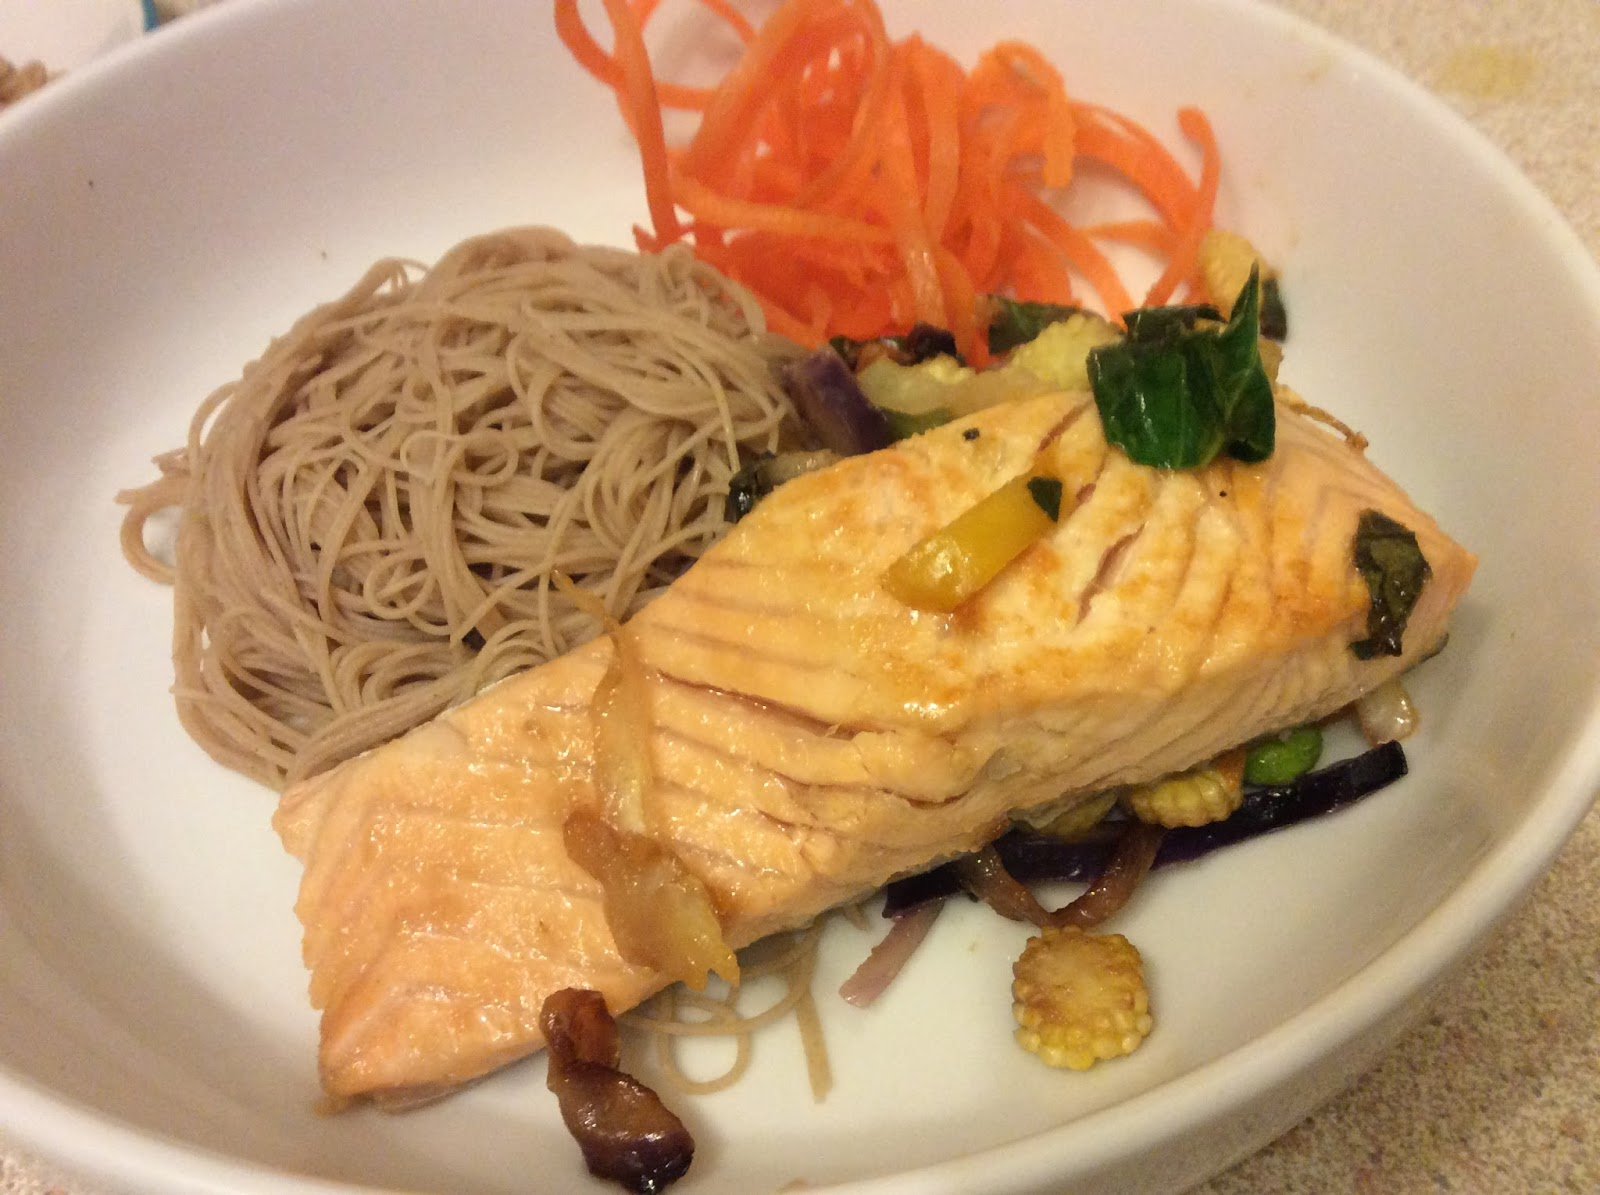 Salmon in a lemon, honey and ginger glaze with buckwheat noodles